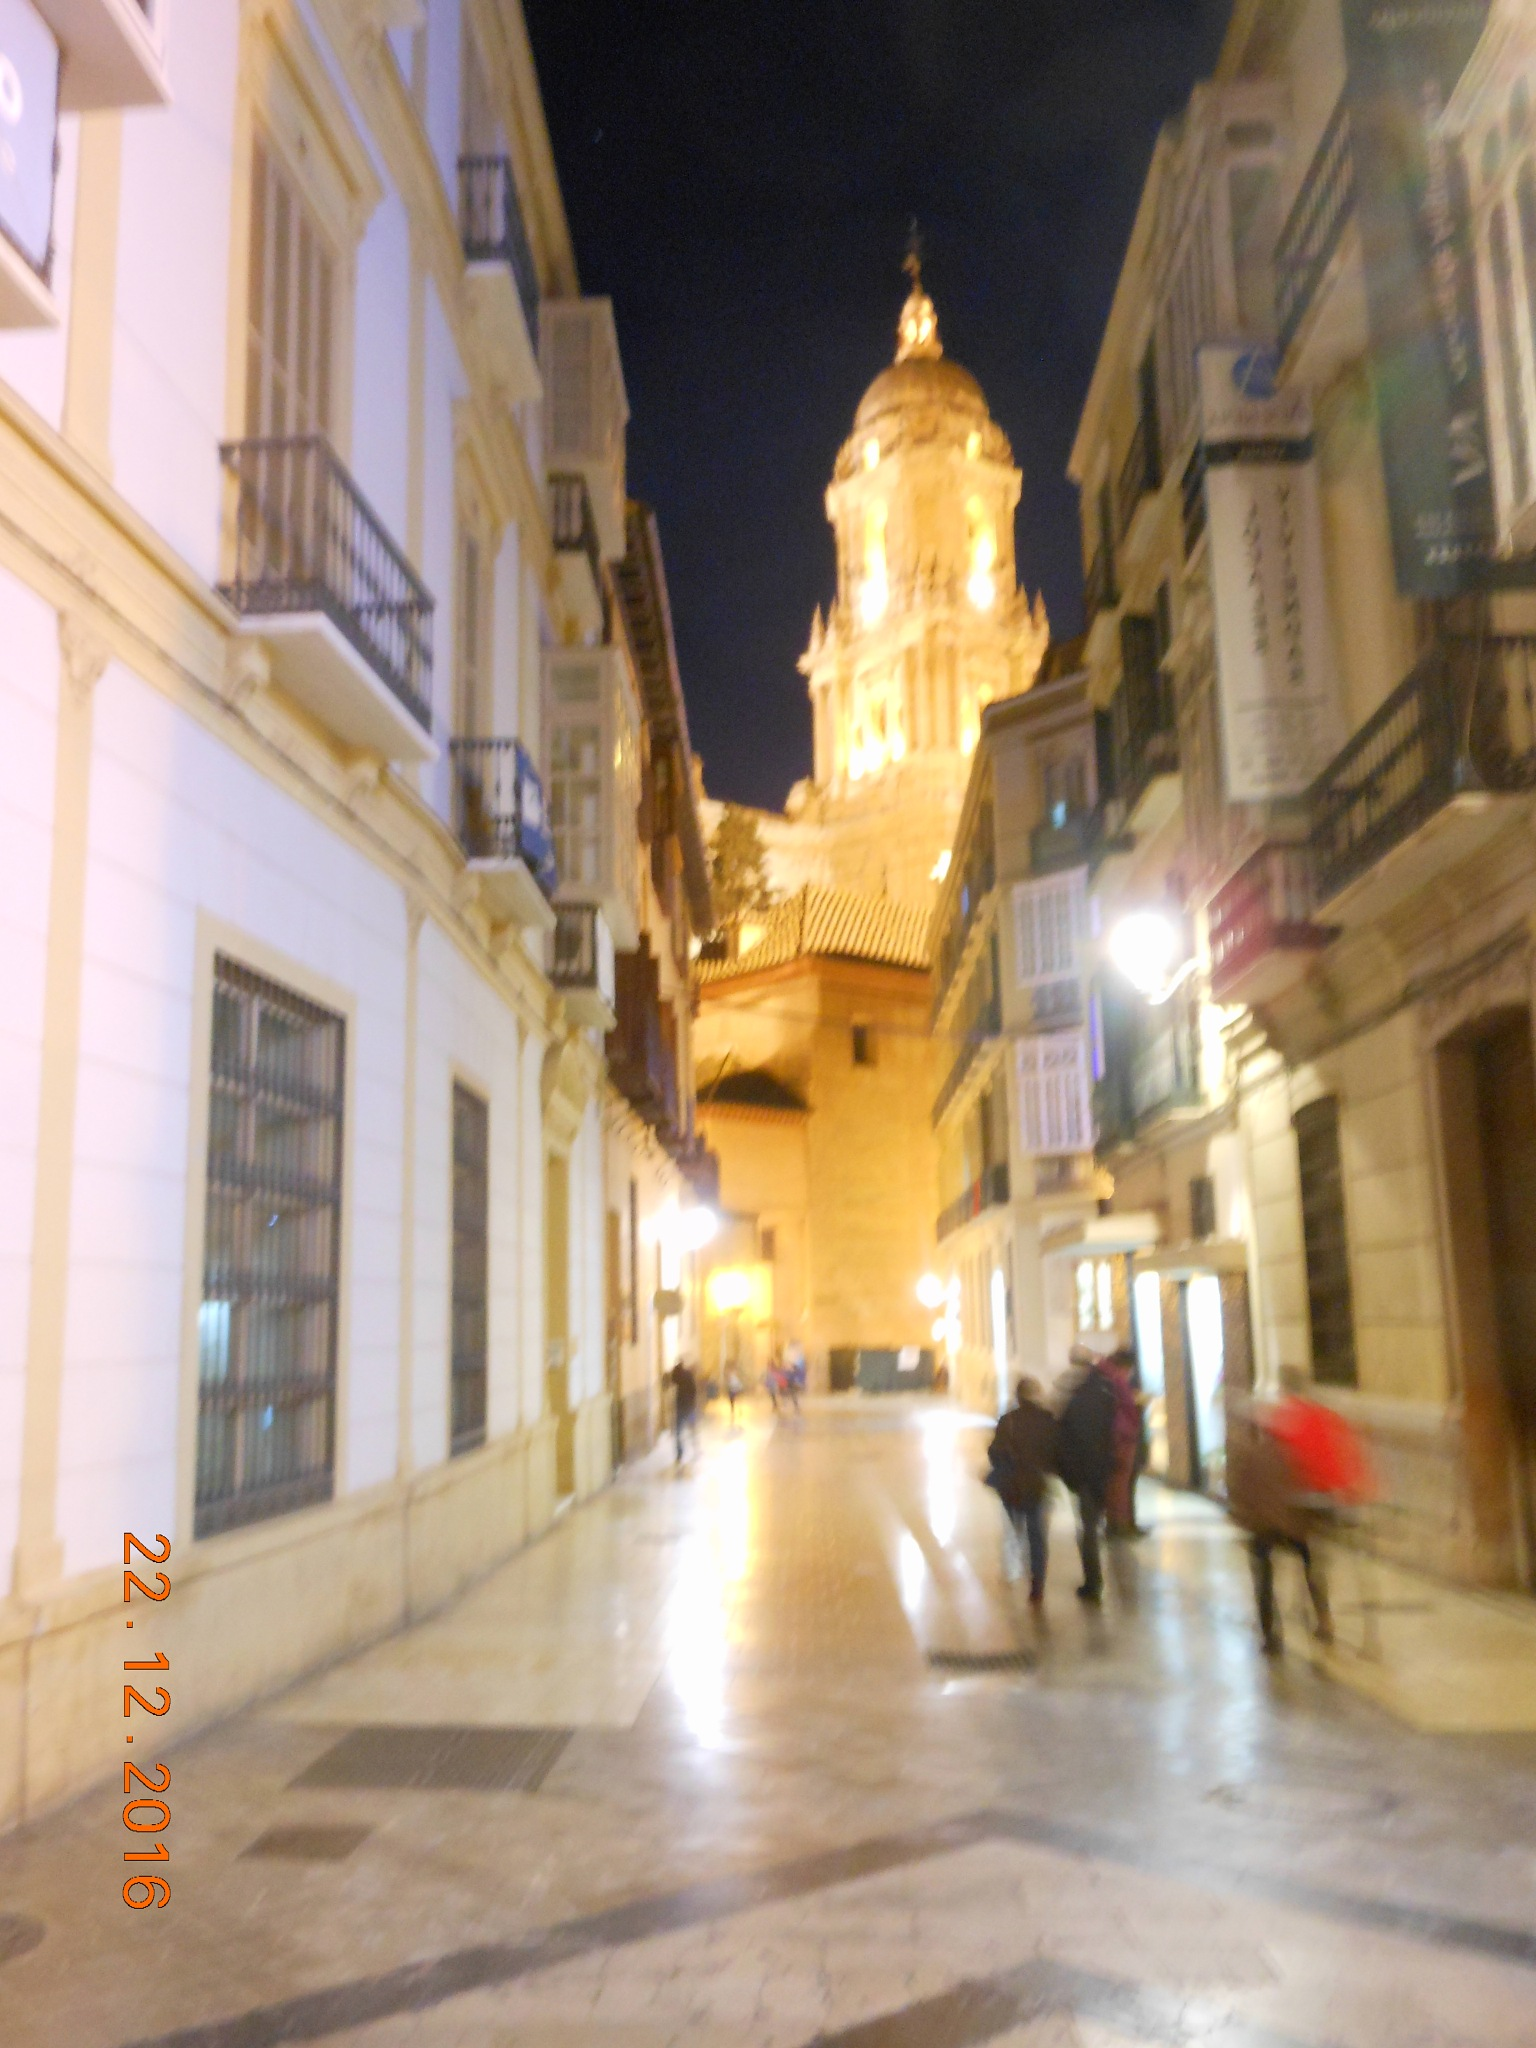 Malaga Centro in one evening in winter by ailahokkanen59